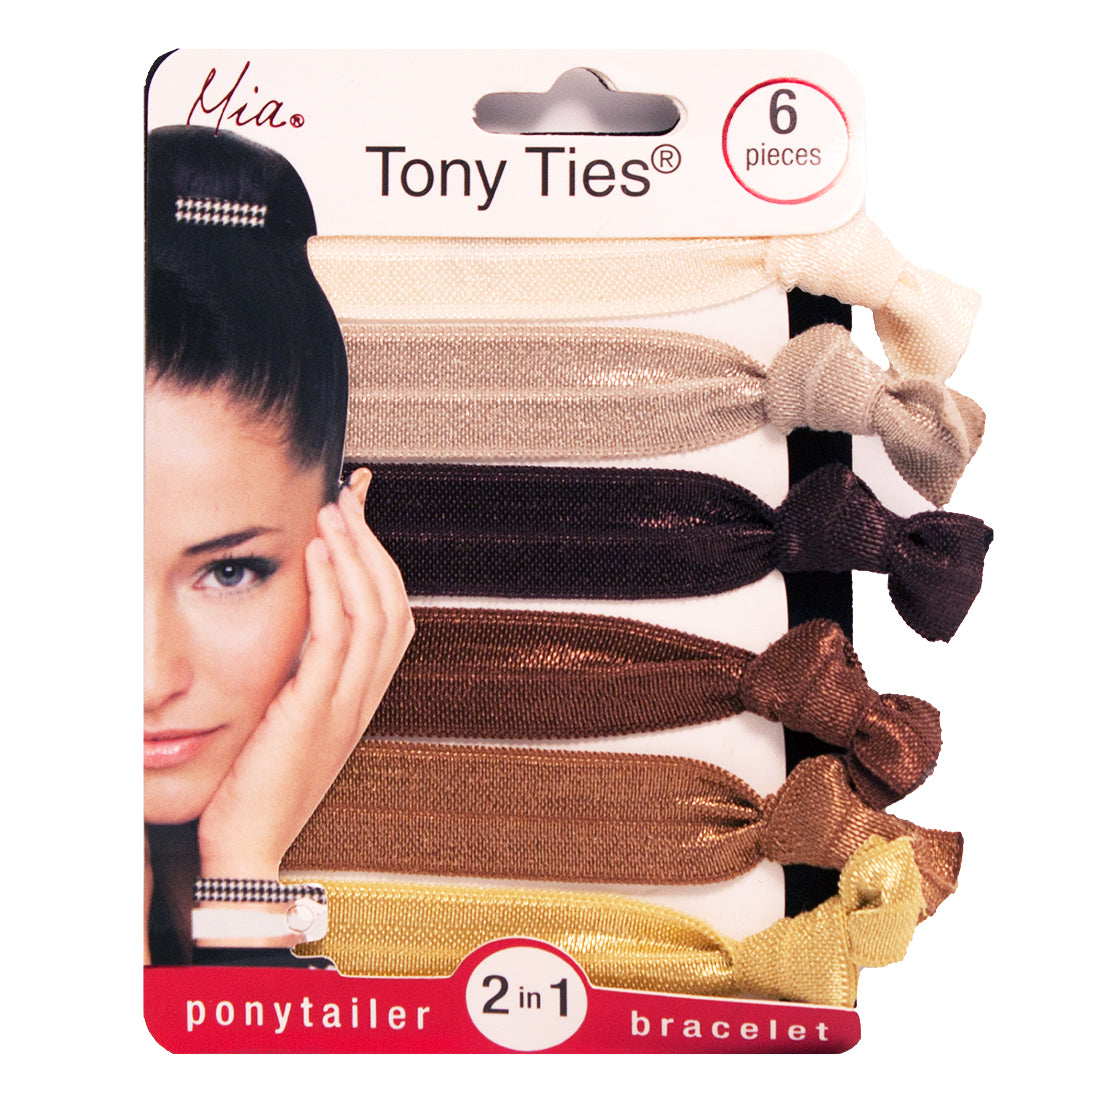 Mia® Tony Ties® basic knotted ribbon hair ties - cream, champagne, chocolate, brown, bronze, gold - Mia® Beauty #MiaKaminski